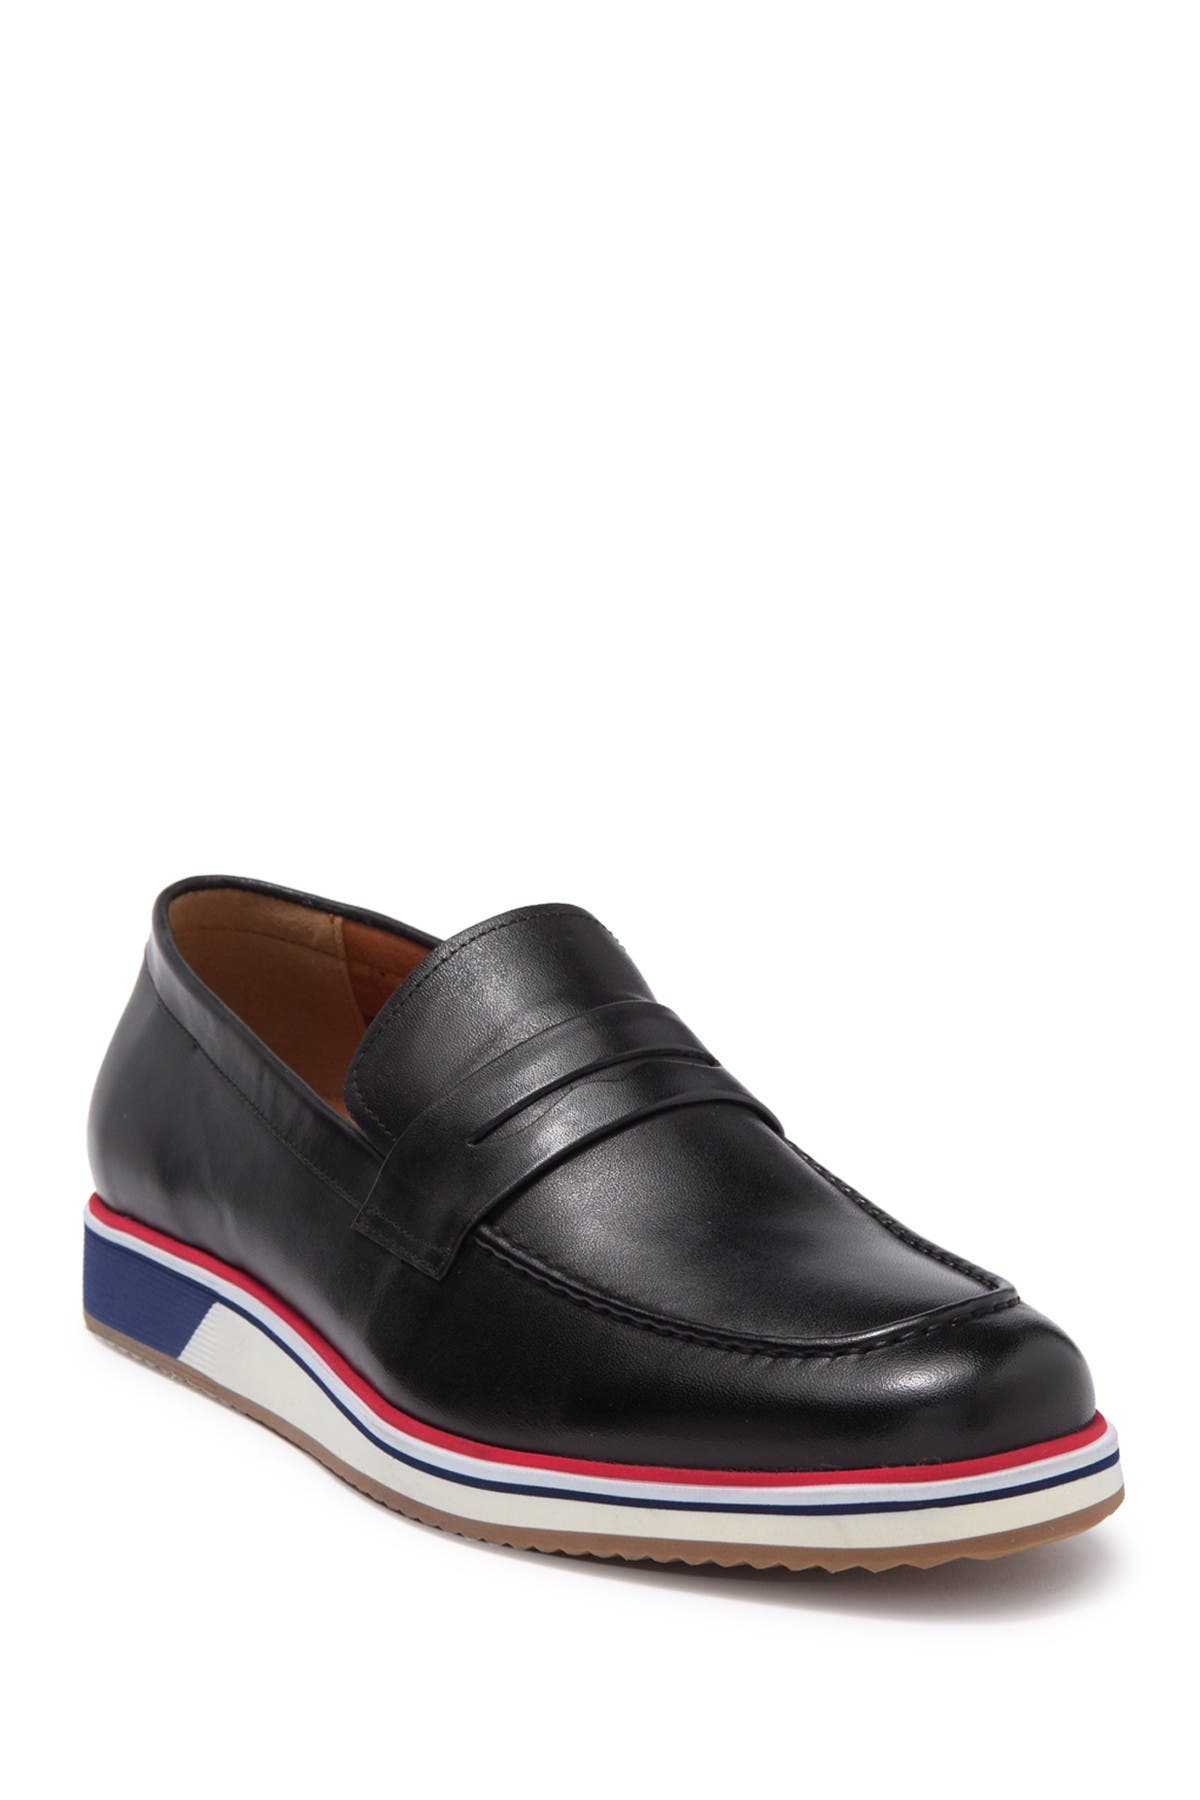 Image of Ike Behar Max Striped Midsole Leather Loafer